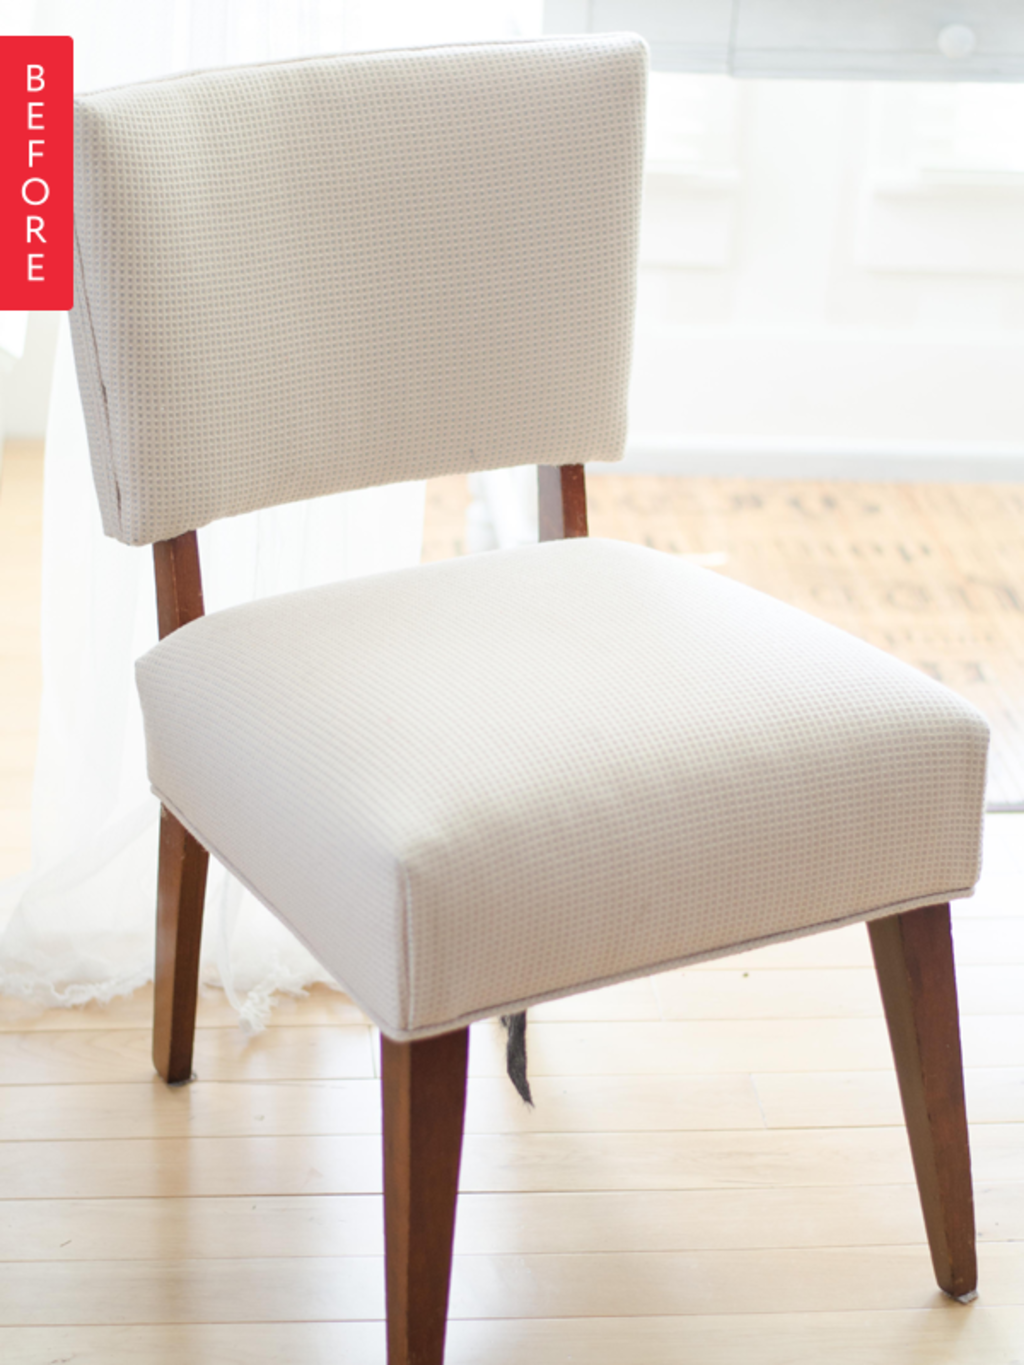 Before & After: A Plain Chair Slips Into Something More Polished